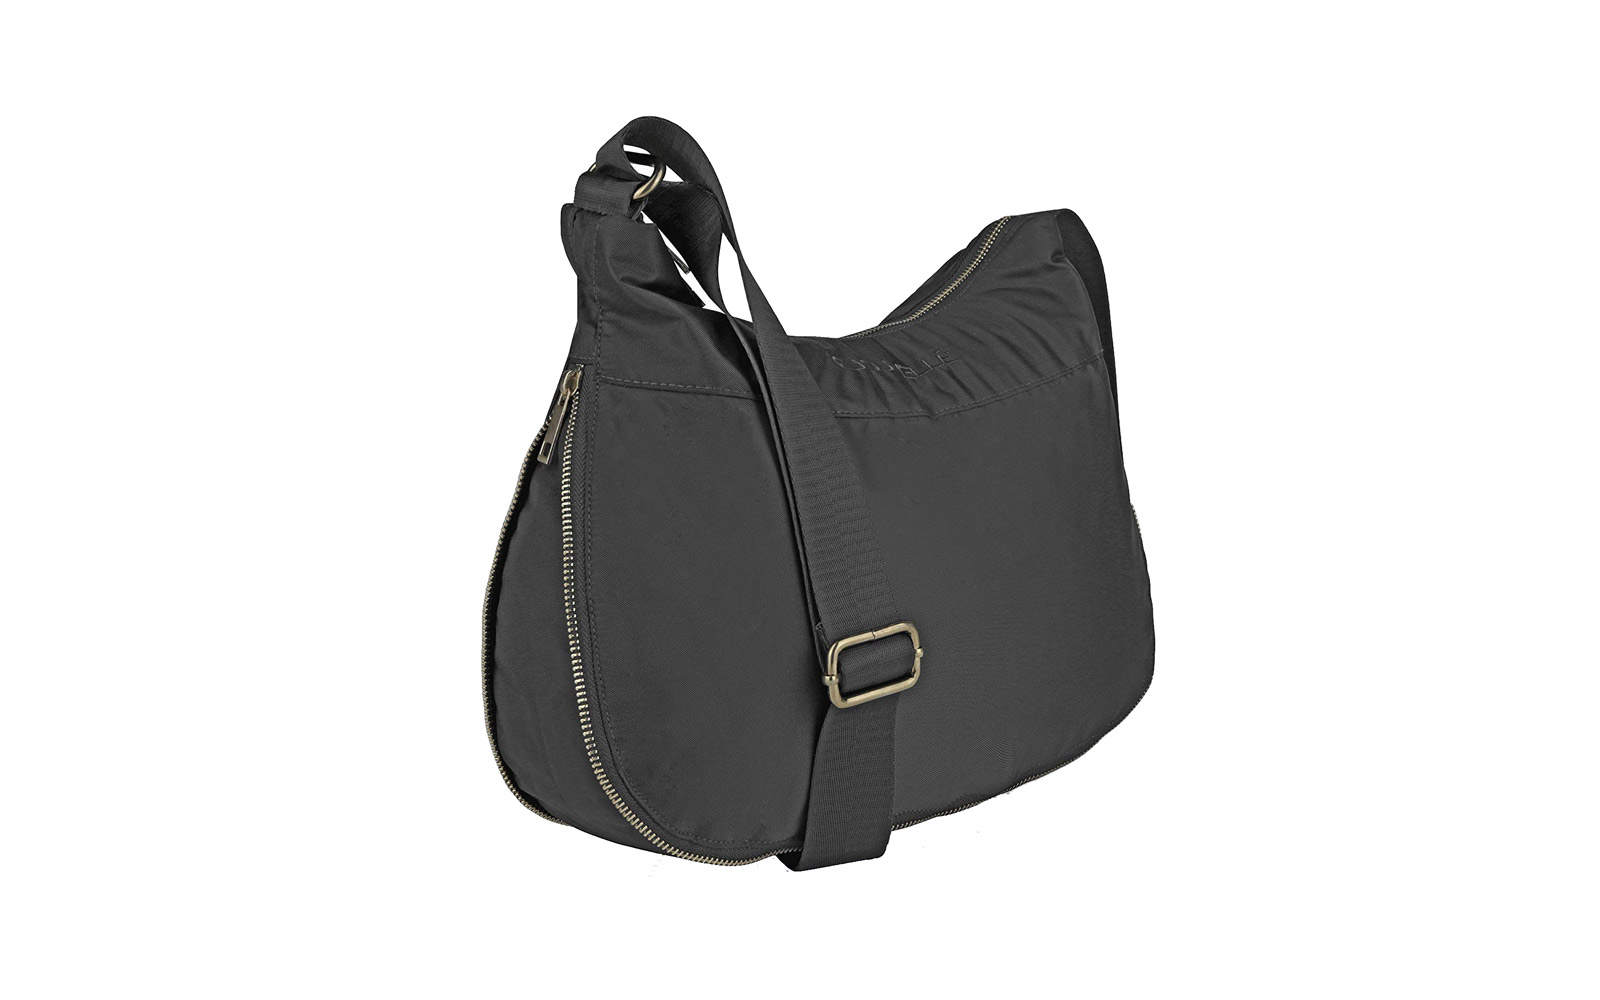 Suvelle RFID Expandable Travel Convertible Cross-body Bag